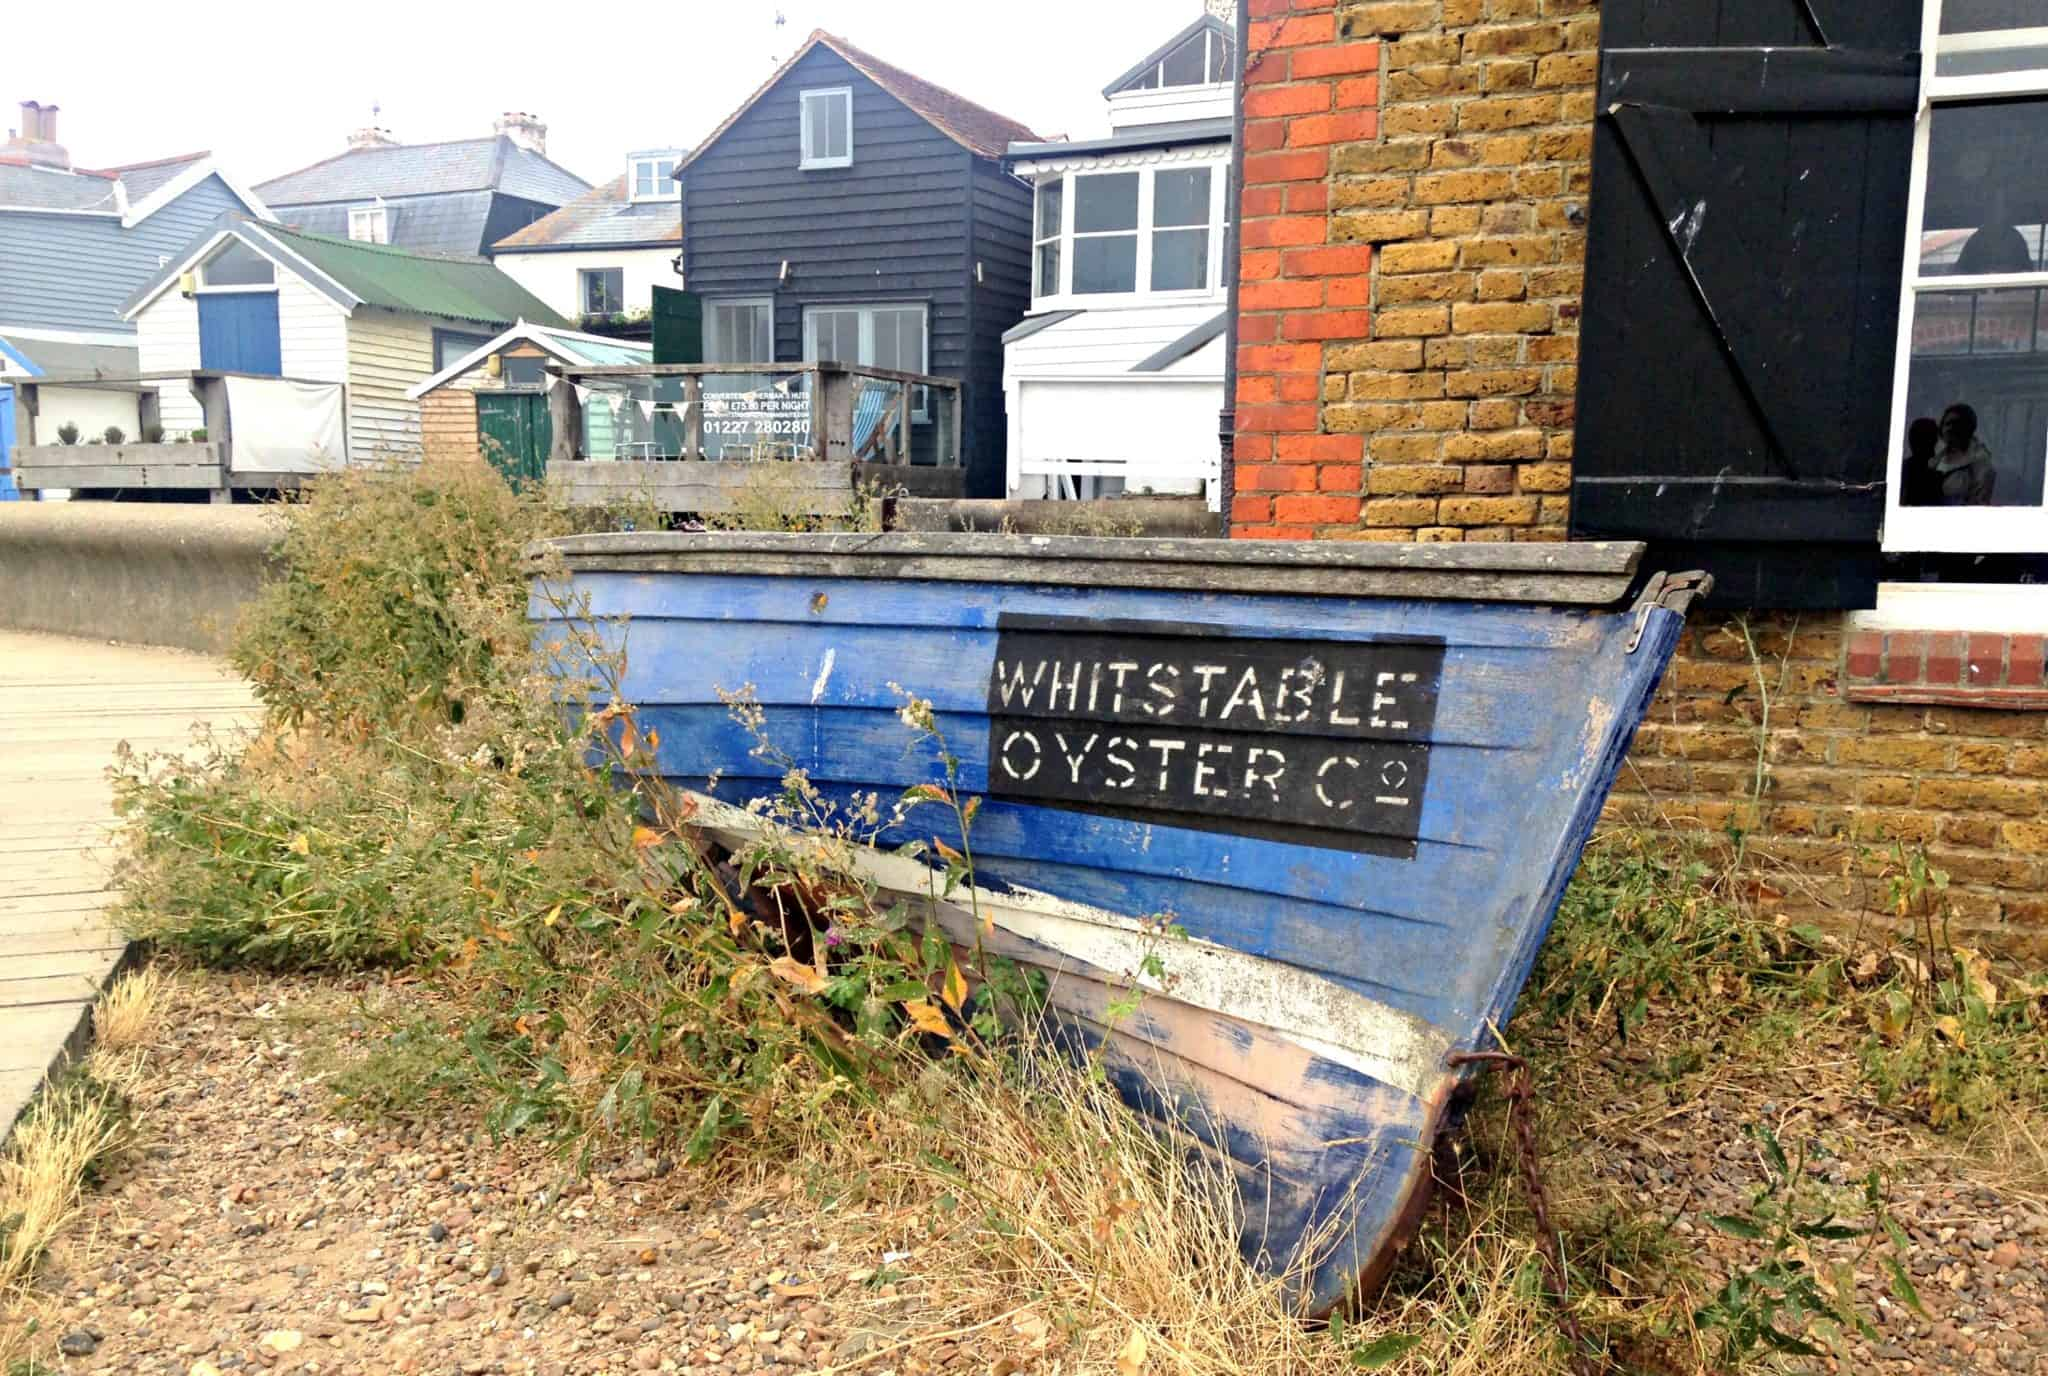 Where To Eat Oysters Whitstable in Kent | My Travel Monkey